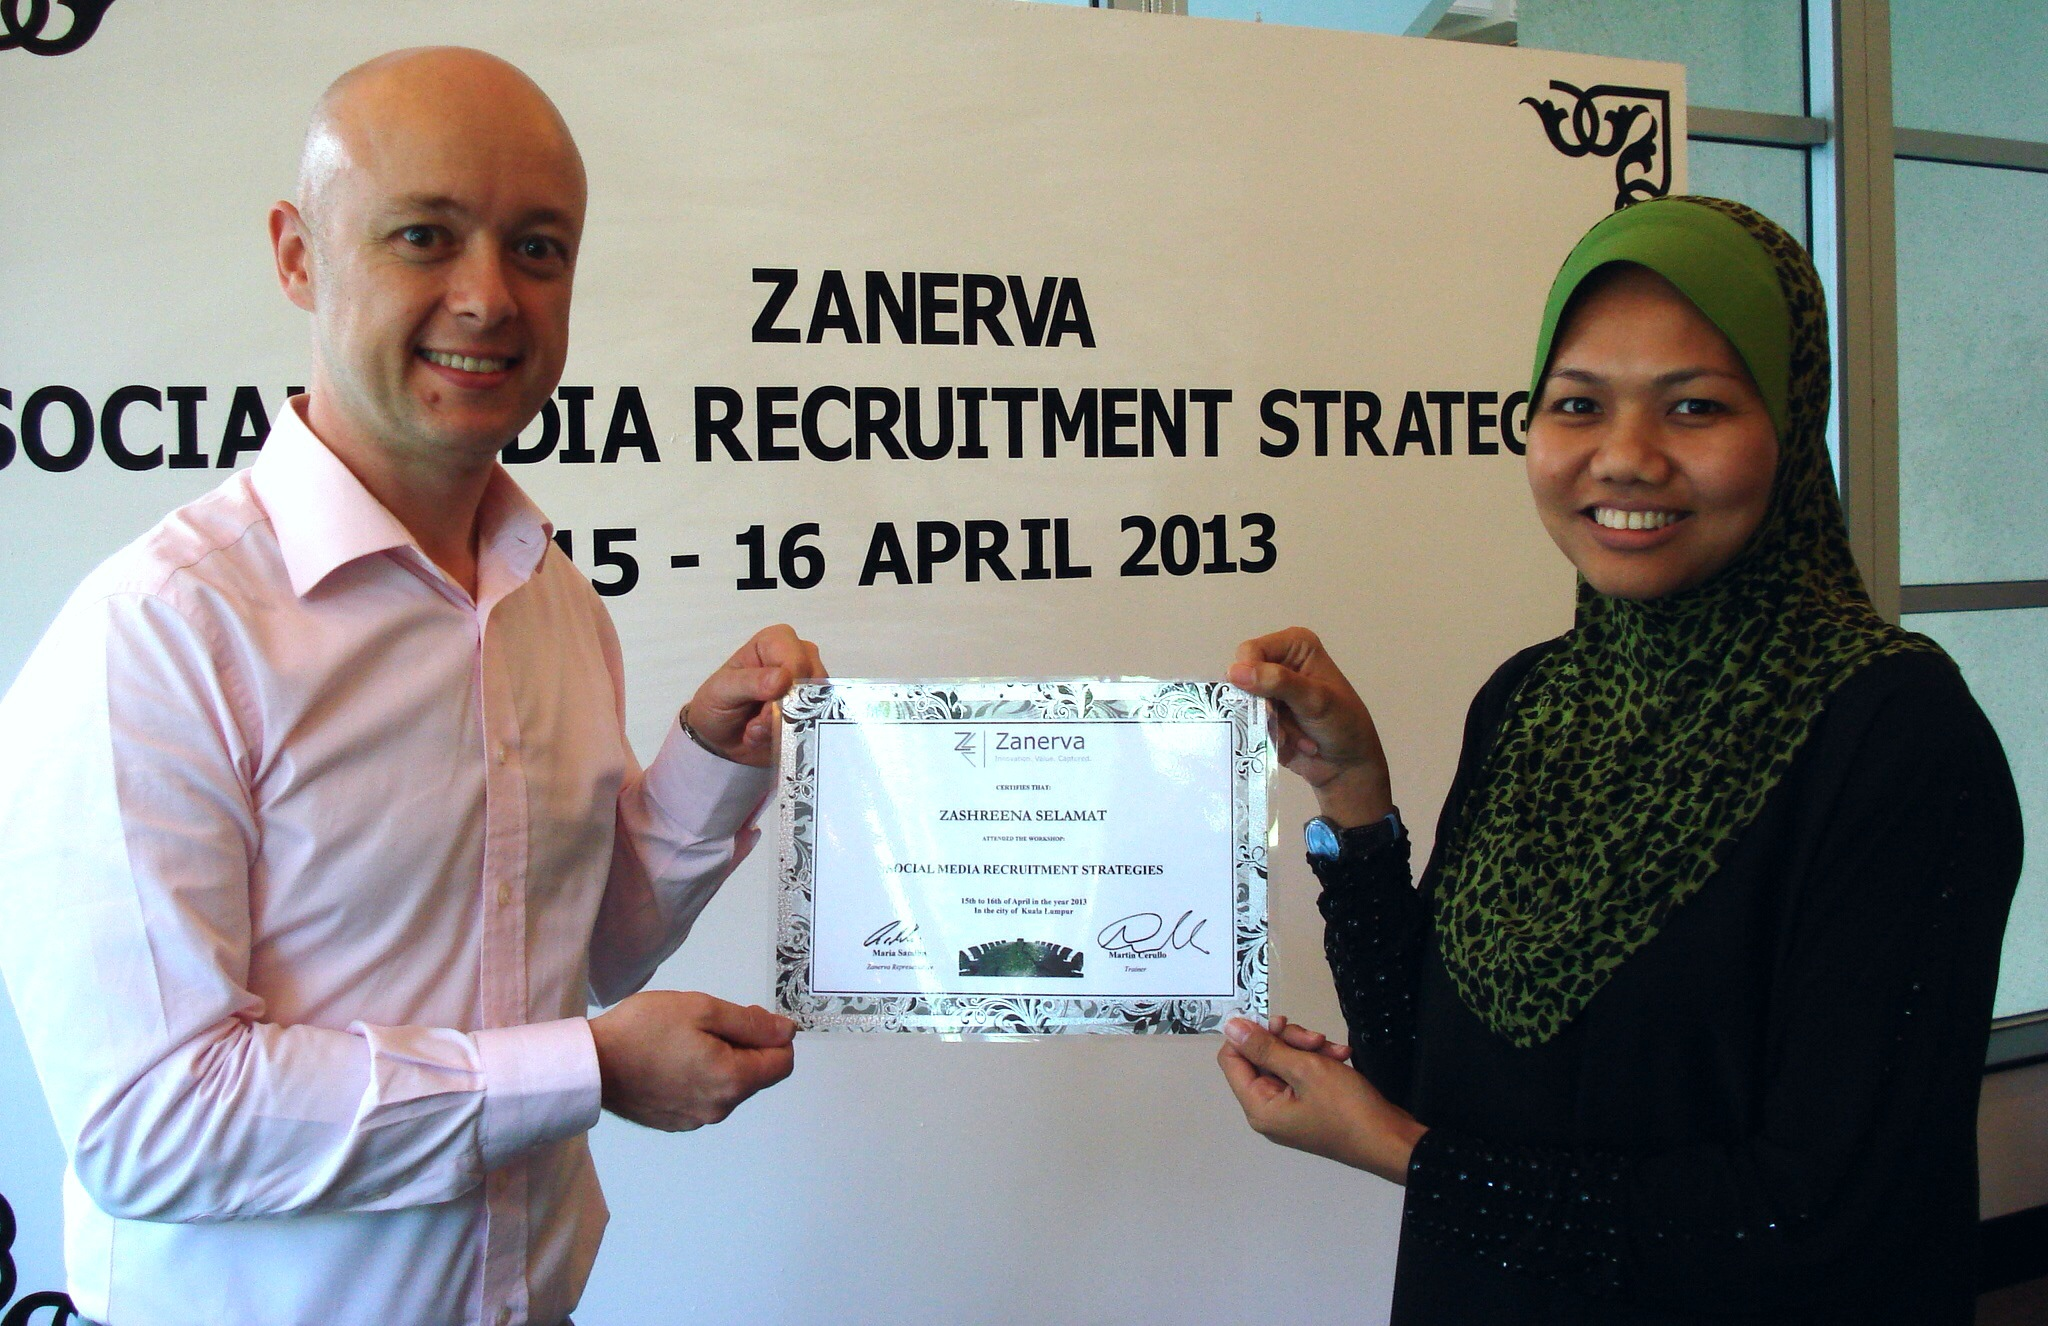 Zashreena Binti Selamat, Talent Sourcing Executive at Sapura Kencana Petroleum  receiving her certificate of participation for attending the Social Media Recruitment Strategies Workshop in Kuala Lumpur